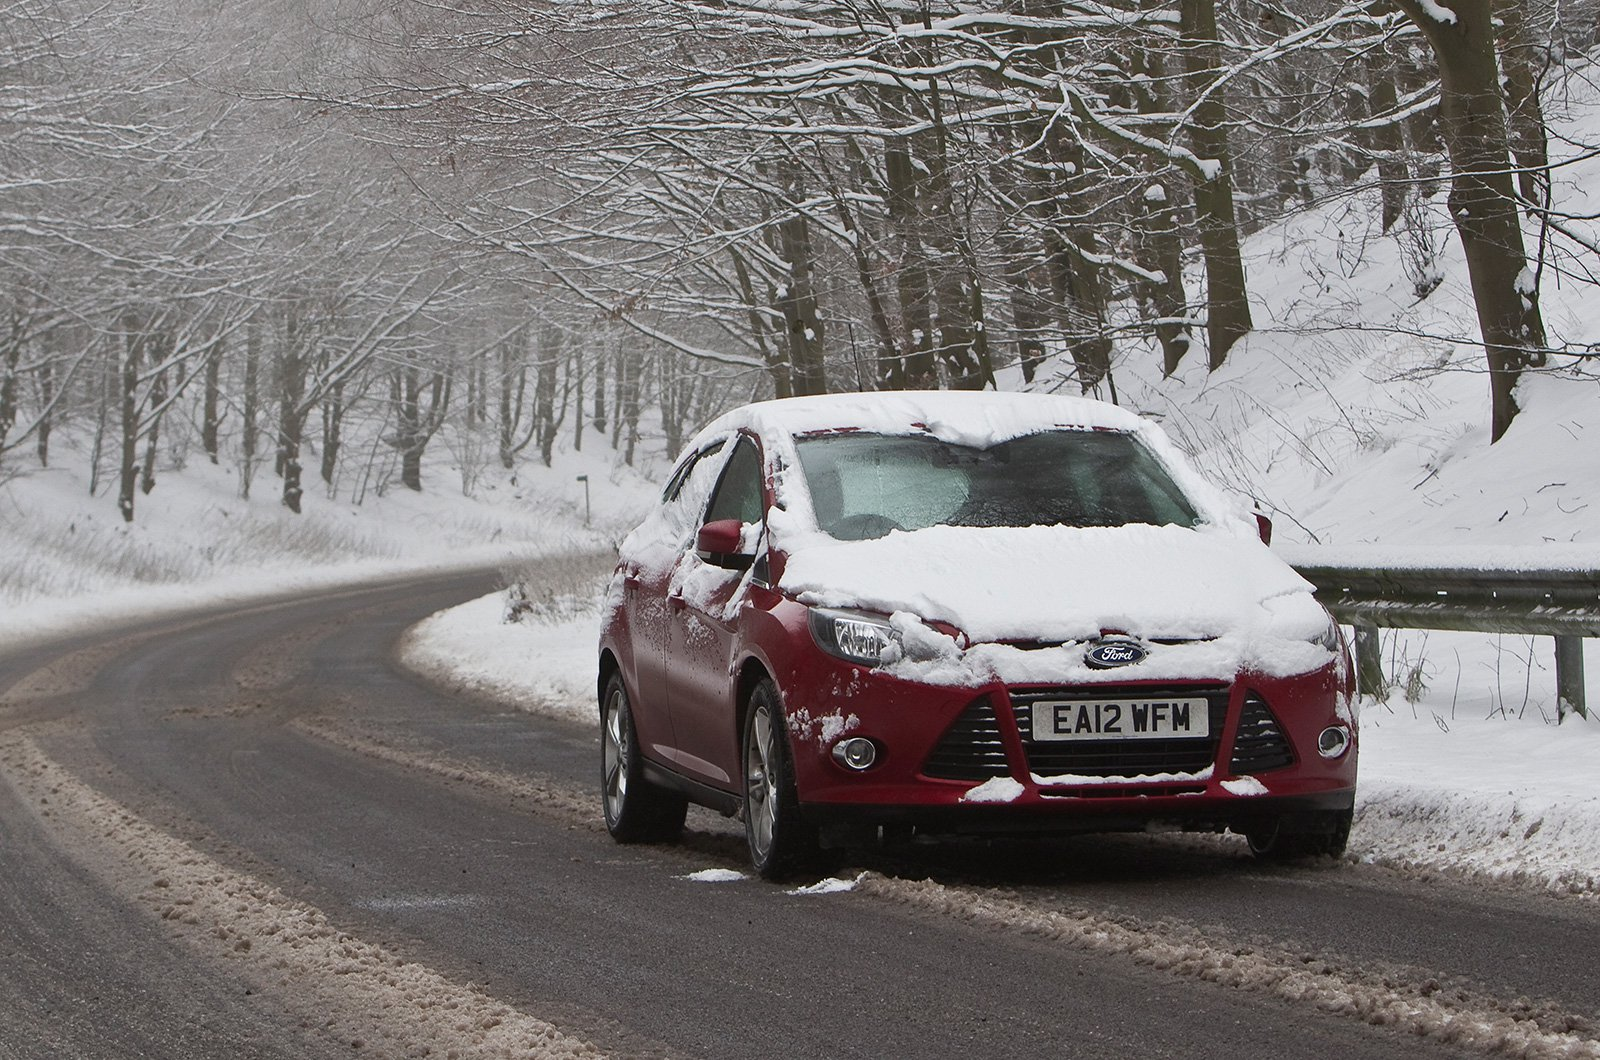 Ford Focus front covered in snow